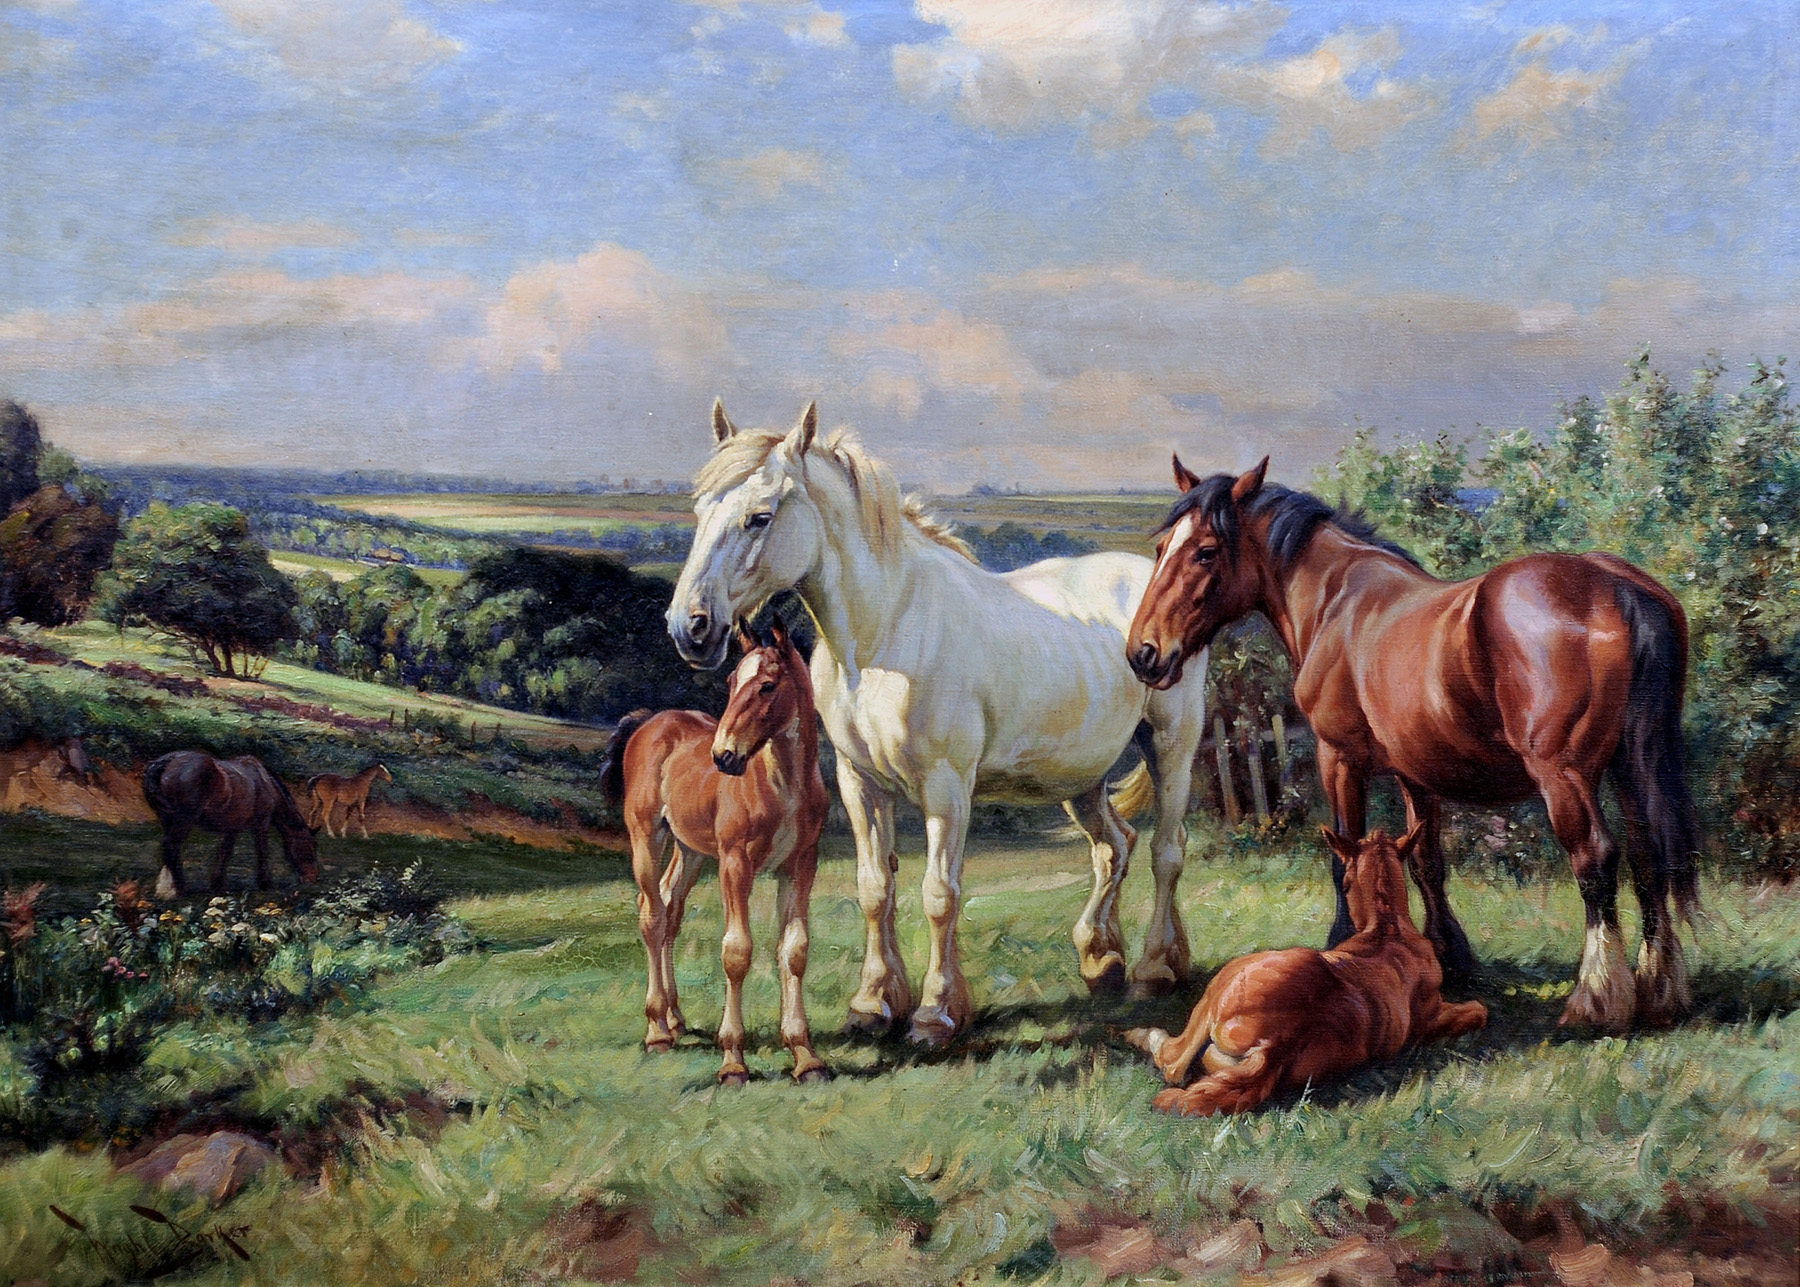 Click to see full size: Oil on canvas of horses, mares and foals by Wright Barker